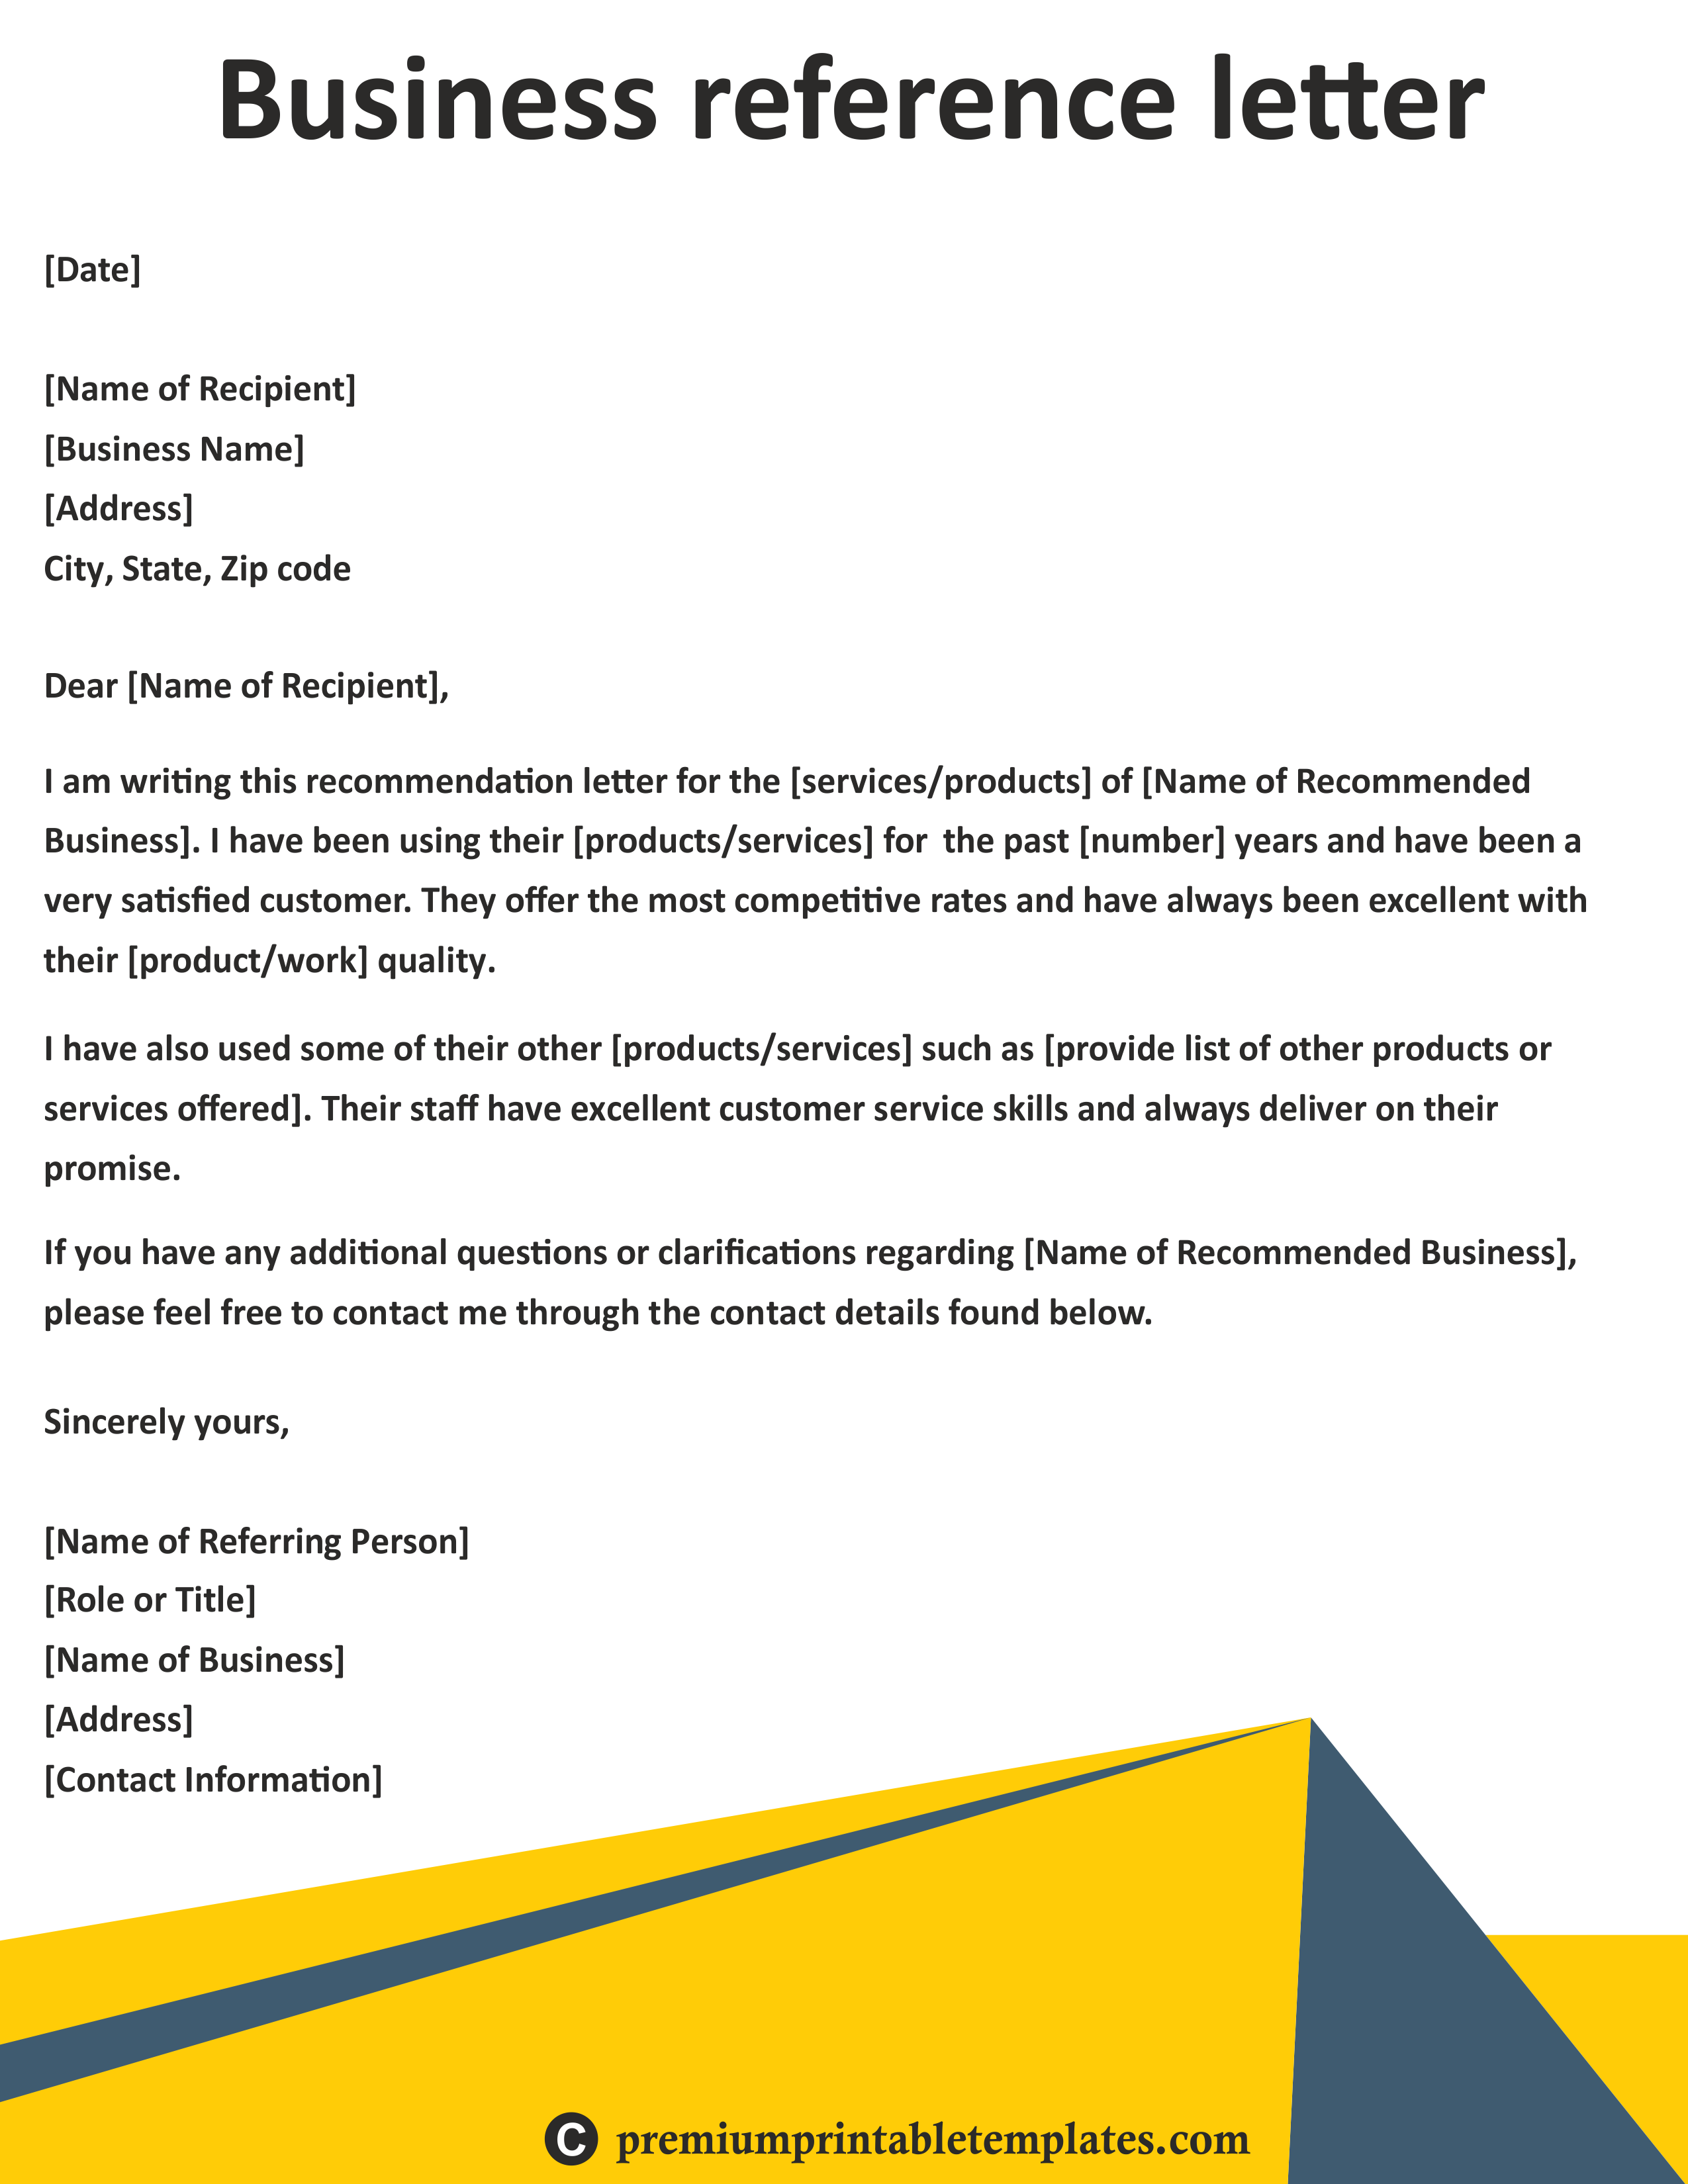 Business reference letter a business reference is a recommendation business reference letter a business reference is a recommendation provided on behalf of a client vendor or other business associate or contact flashek Images